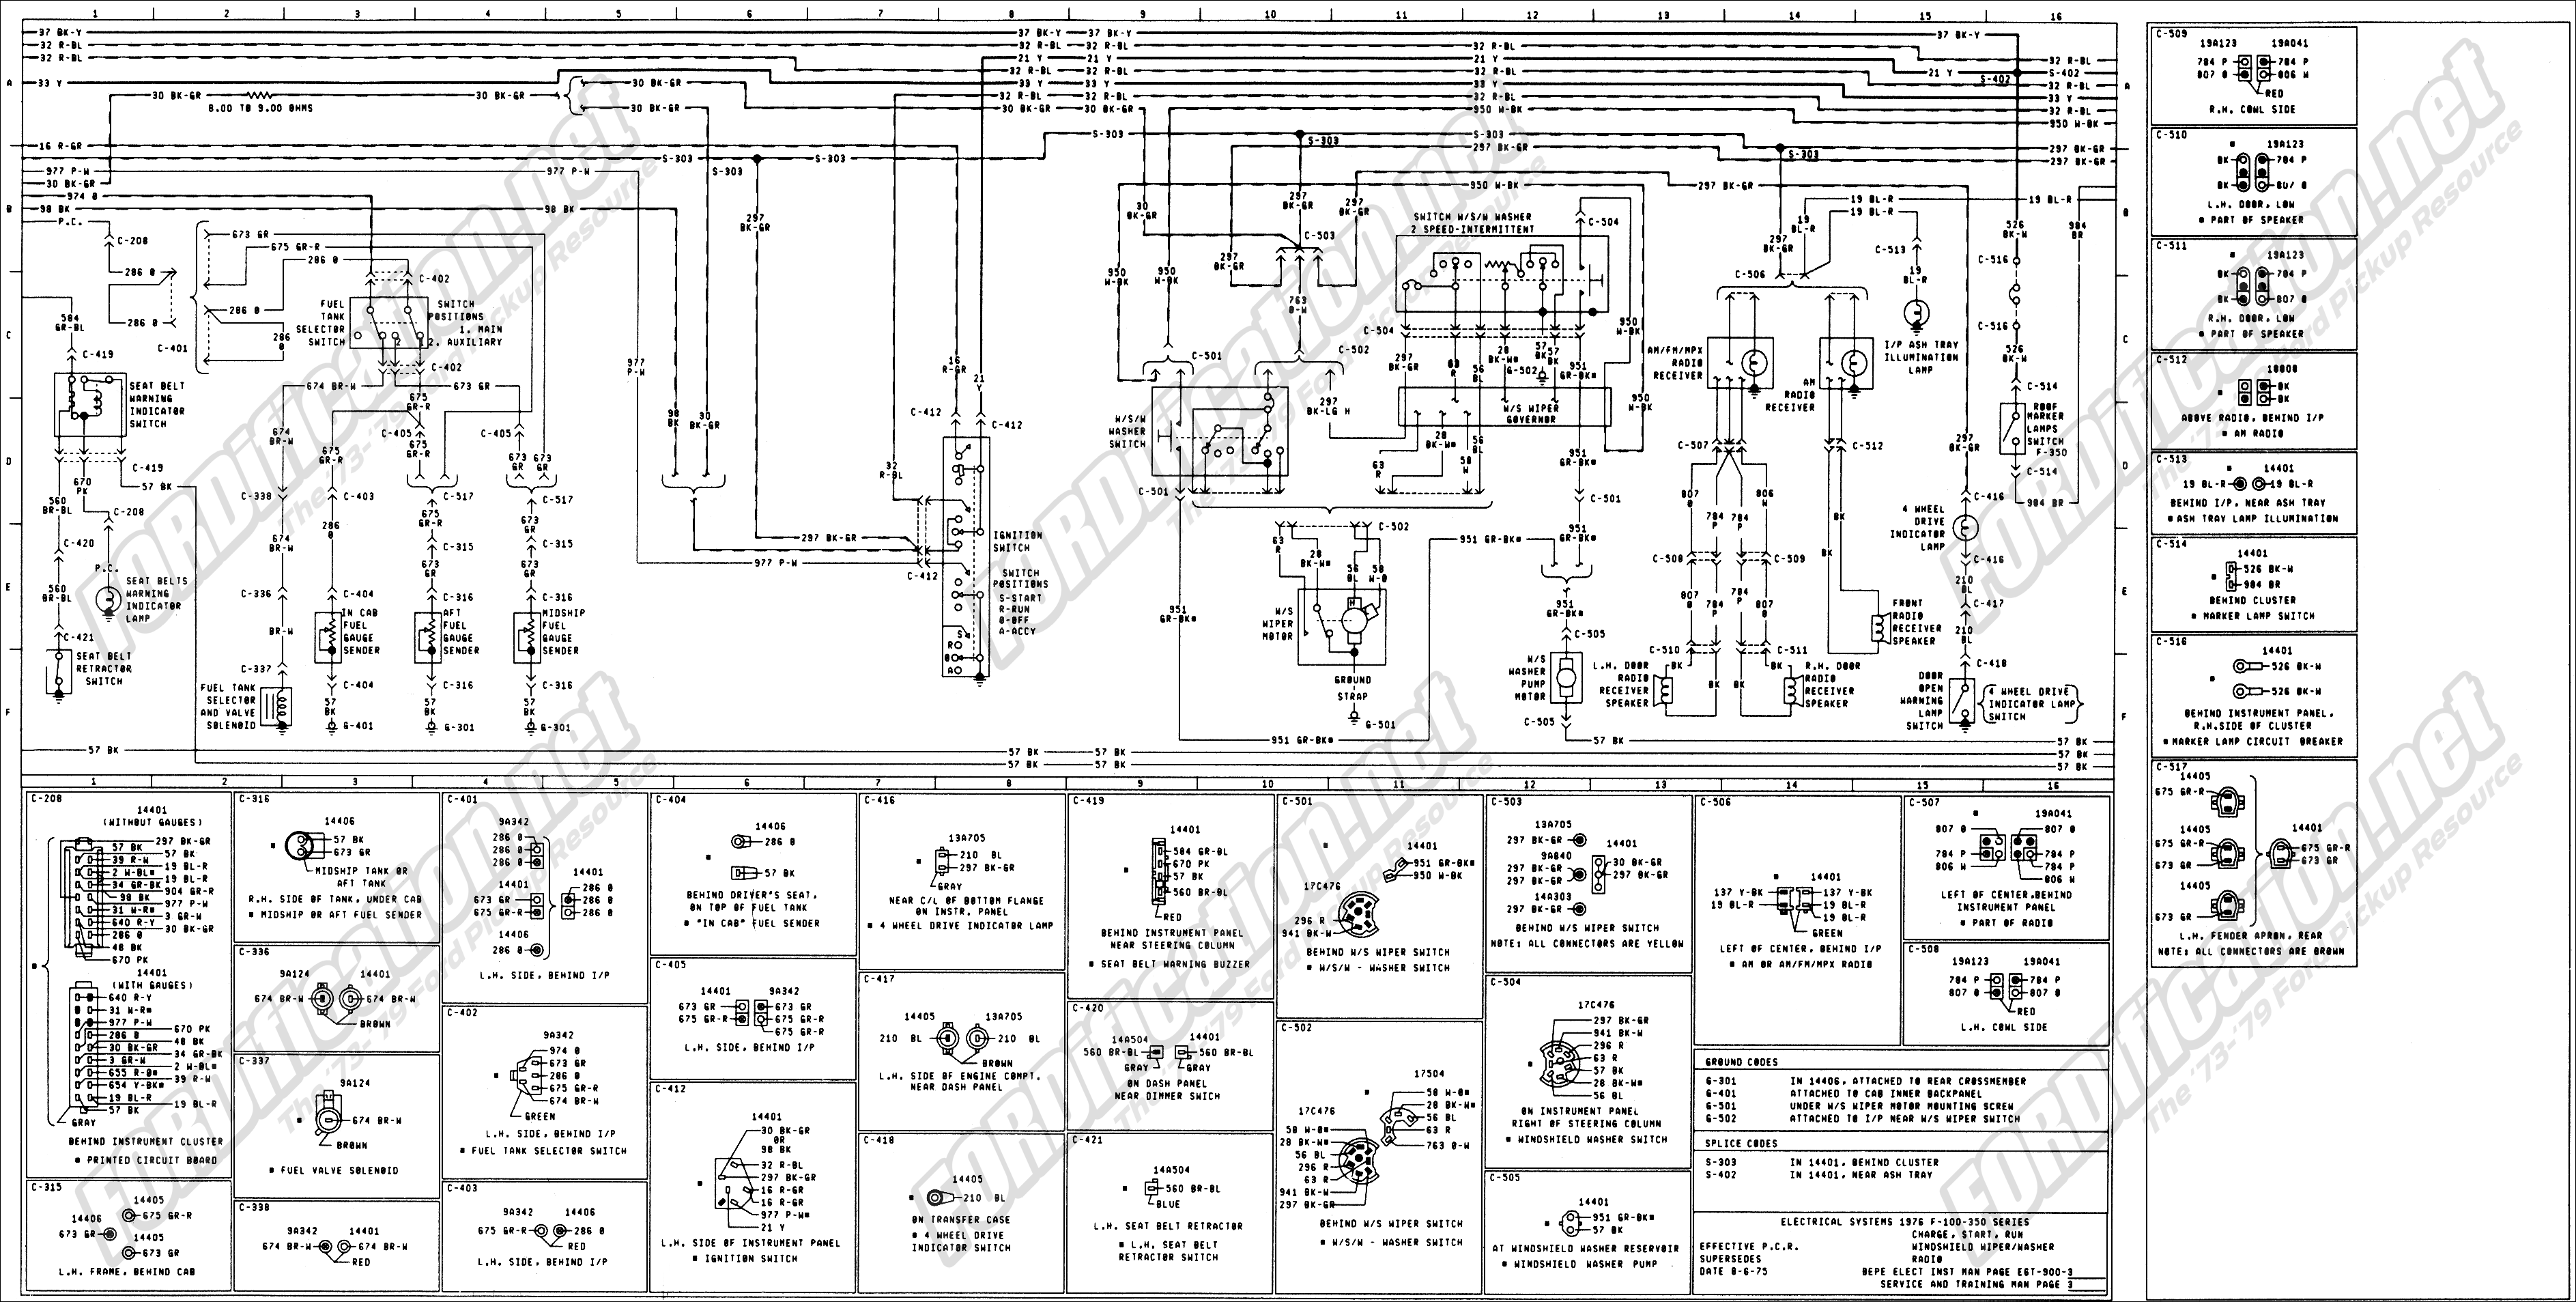 wiring_76master_3of9 ford ranger & bronco ii electrical diagrams at the ranger station 1979 ford truck fuse box diagram at bayanpartner.co